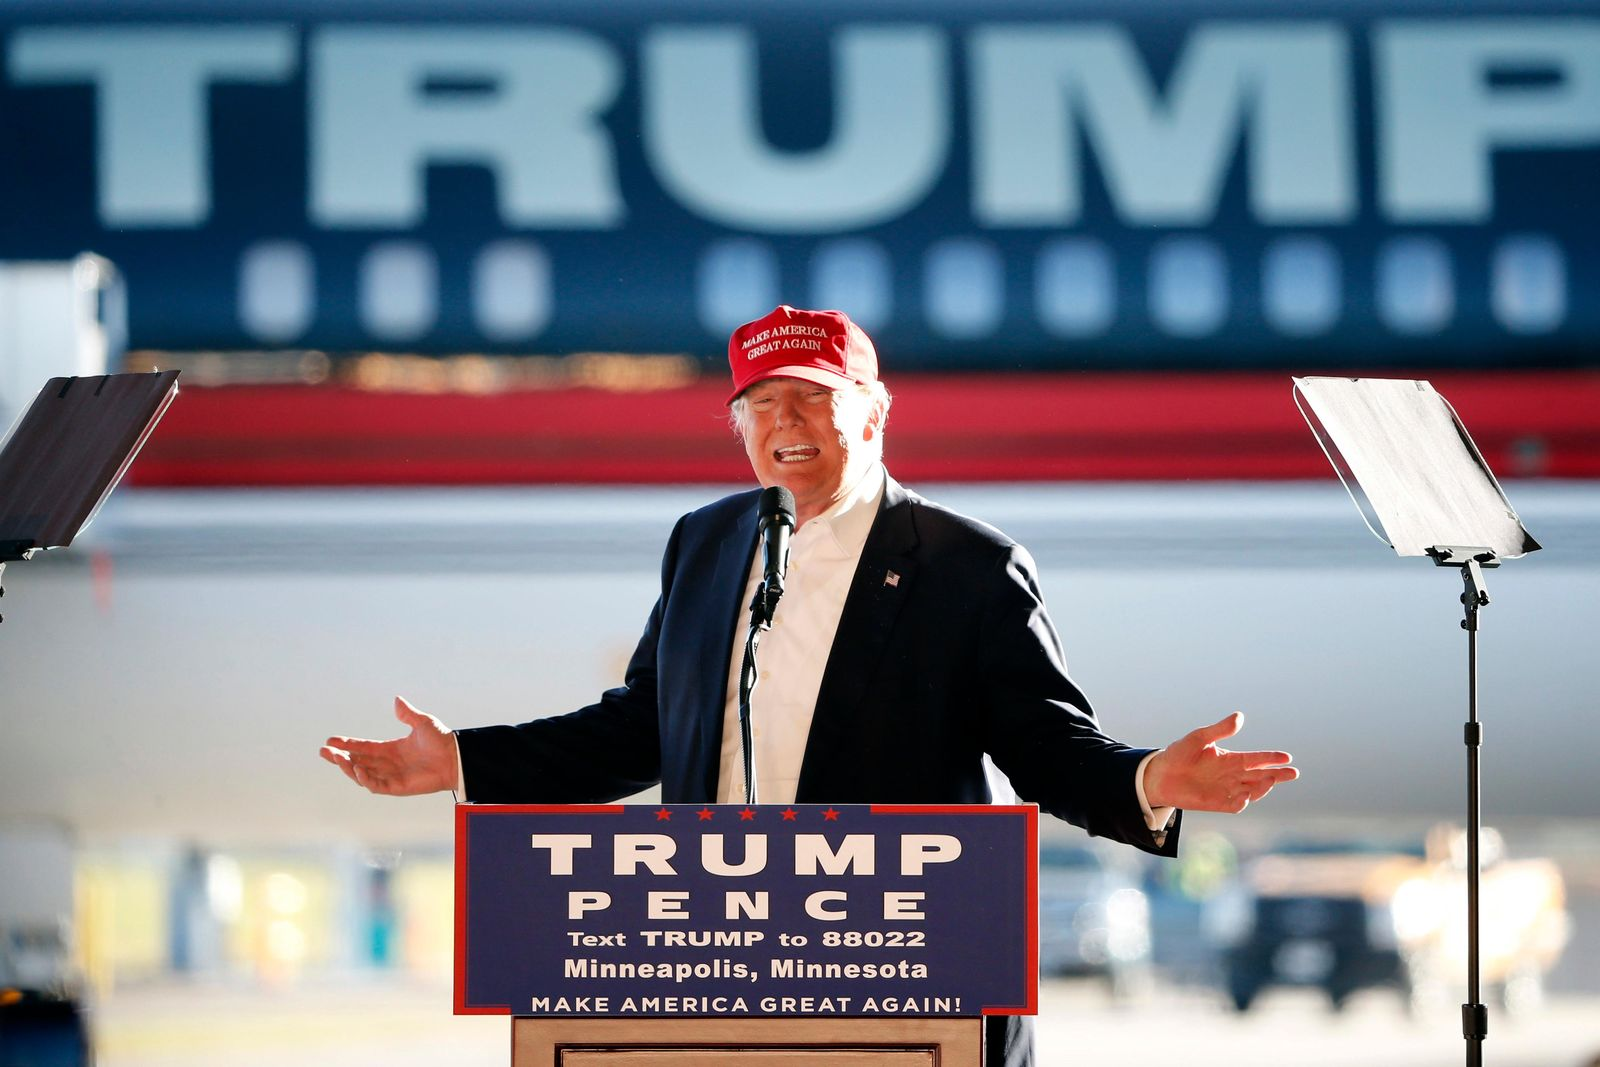 FILE - In this Sunday, Nov. 6, 2016 file photo, Republican presidential candidate Donald Trump addresses the crowd during a campaign stop at the Minneapolis International Airport. (AP Photo/Charles Rex Arbogast)